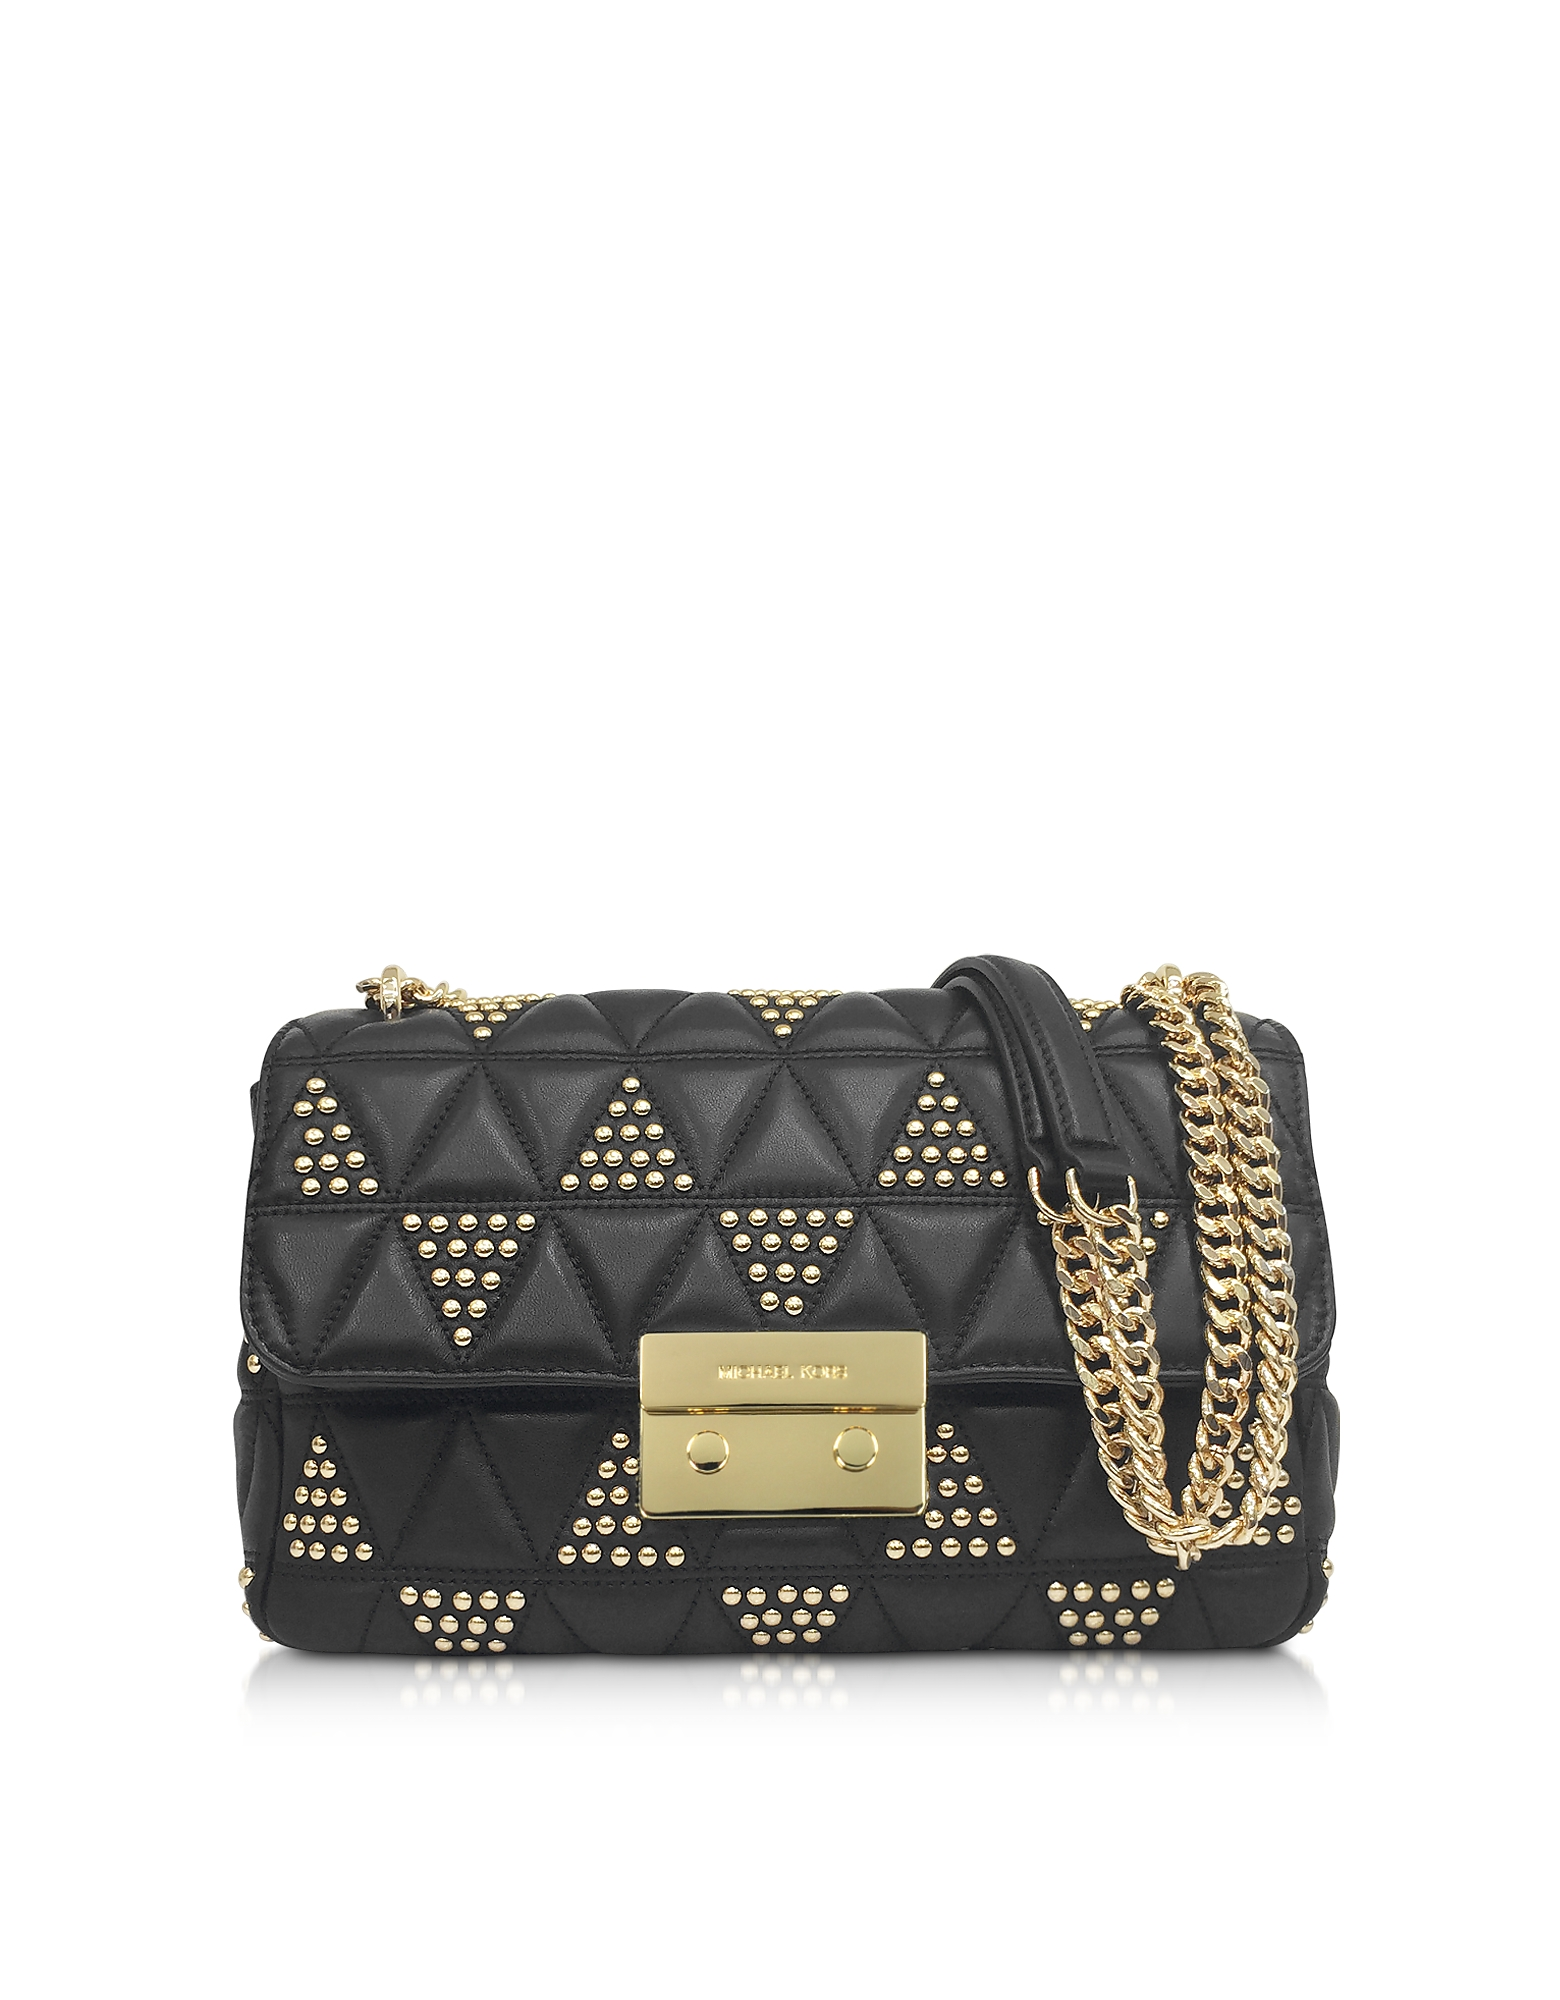 Michael Kors Handbags, Sloan Large Studded Leather Shoulder Bag